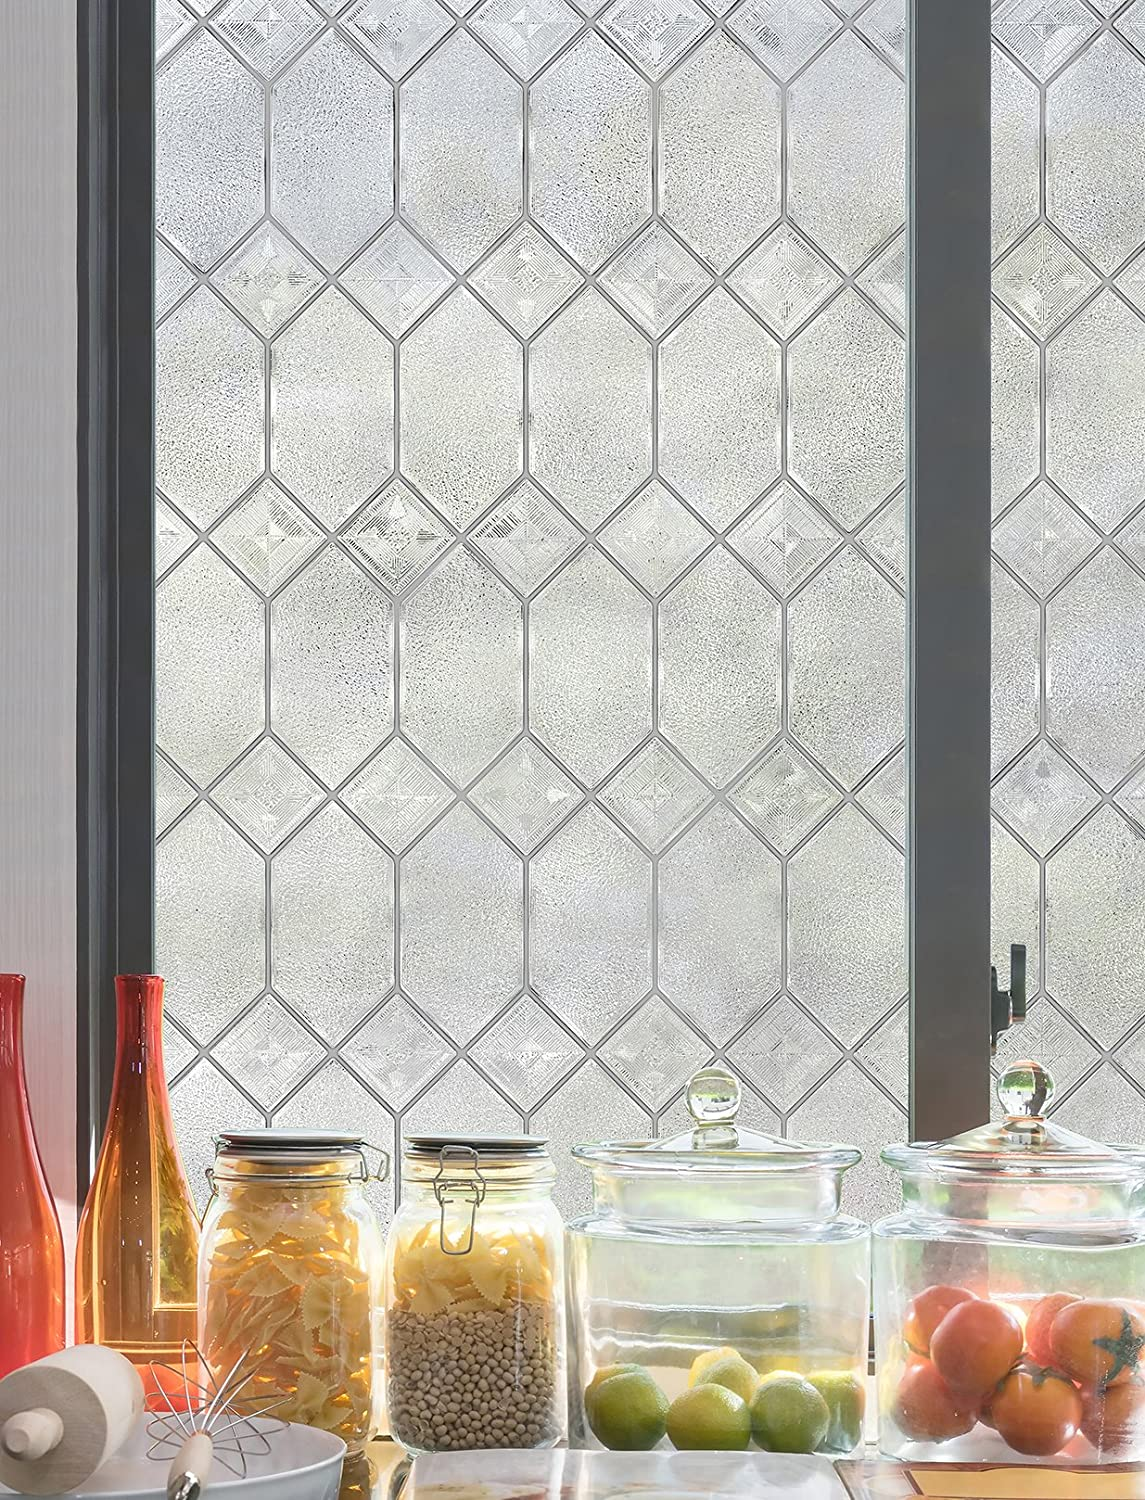 ARTSCAPE Old English 24 in. X 36 in. Window Film, 24-by-36-Inch